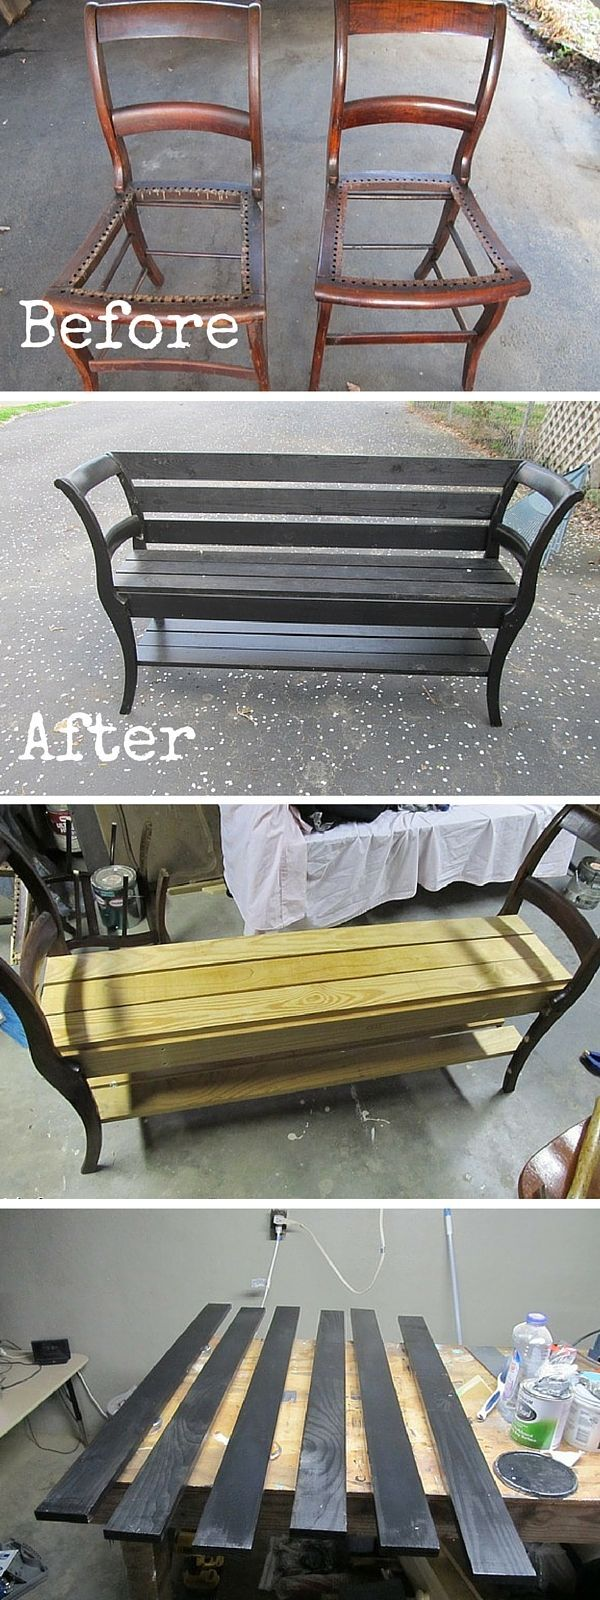 Check out the tutorial: #DIY Turn 2 Chairs into a Bench #crafts                                                                                                                                                                                 More